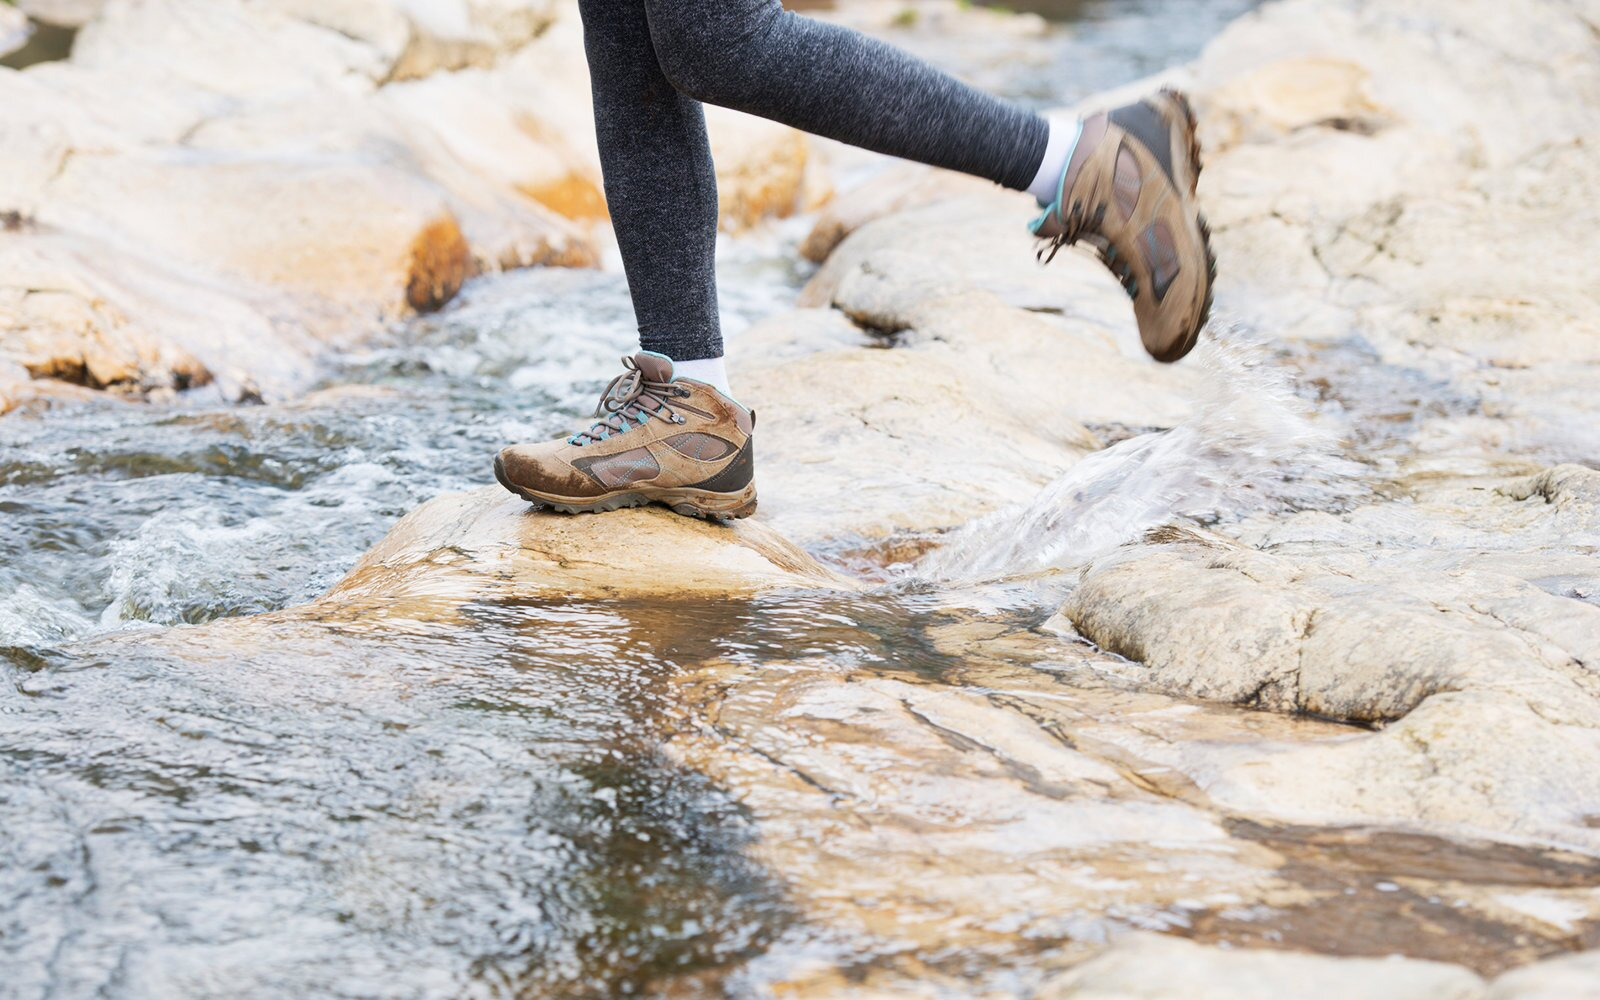 8abf1dead44 The Best Waterproof Hiking Boots for Men and Women | Travel + Leisure